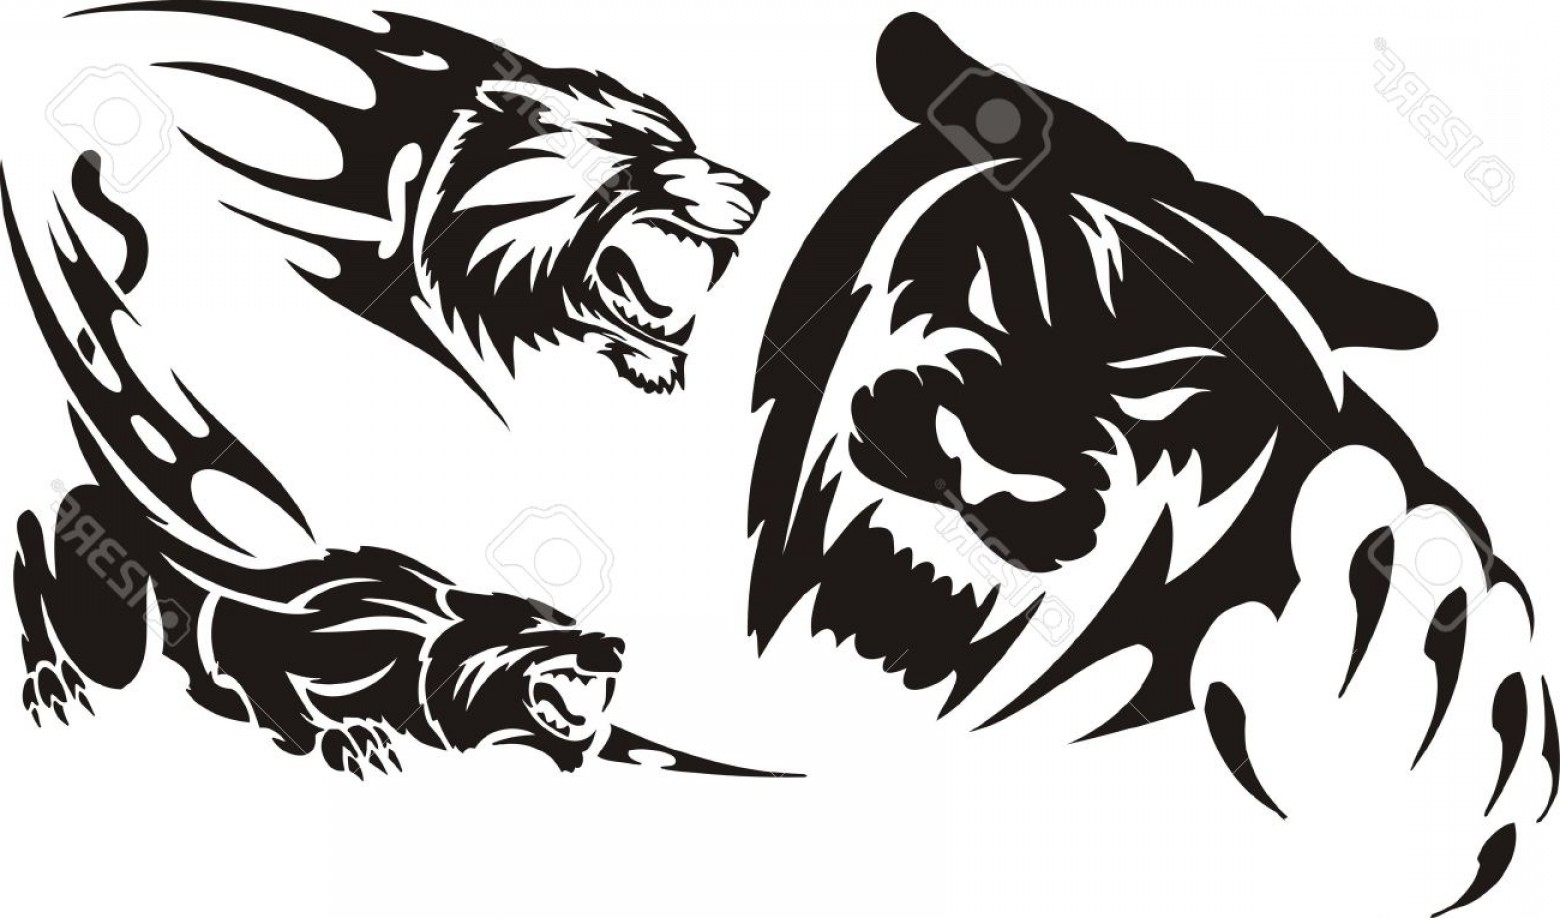 Lioness Vector at GetDrawings com | Free for personal use